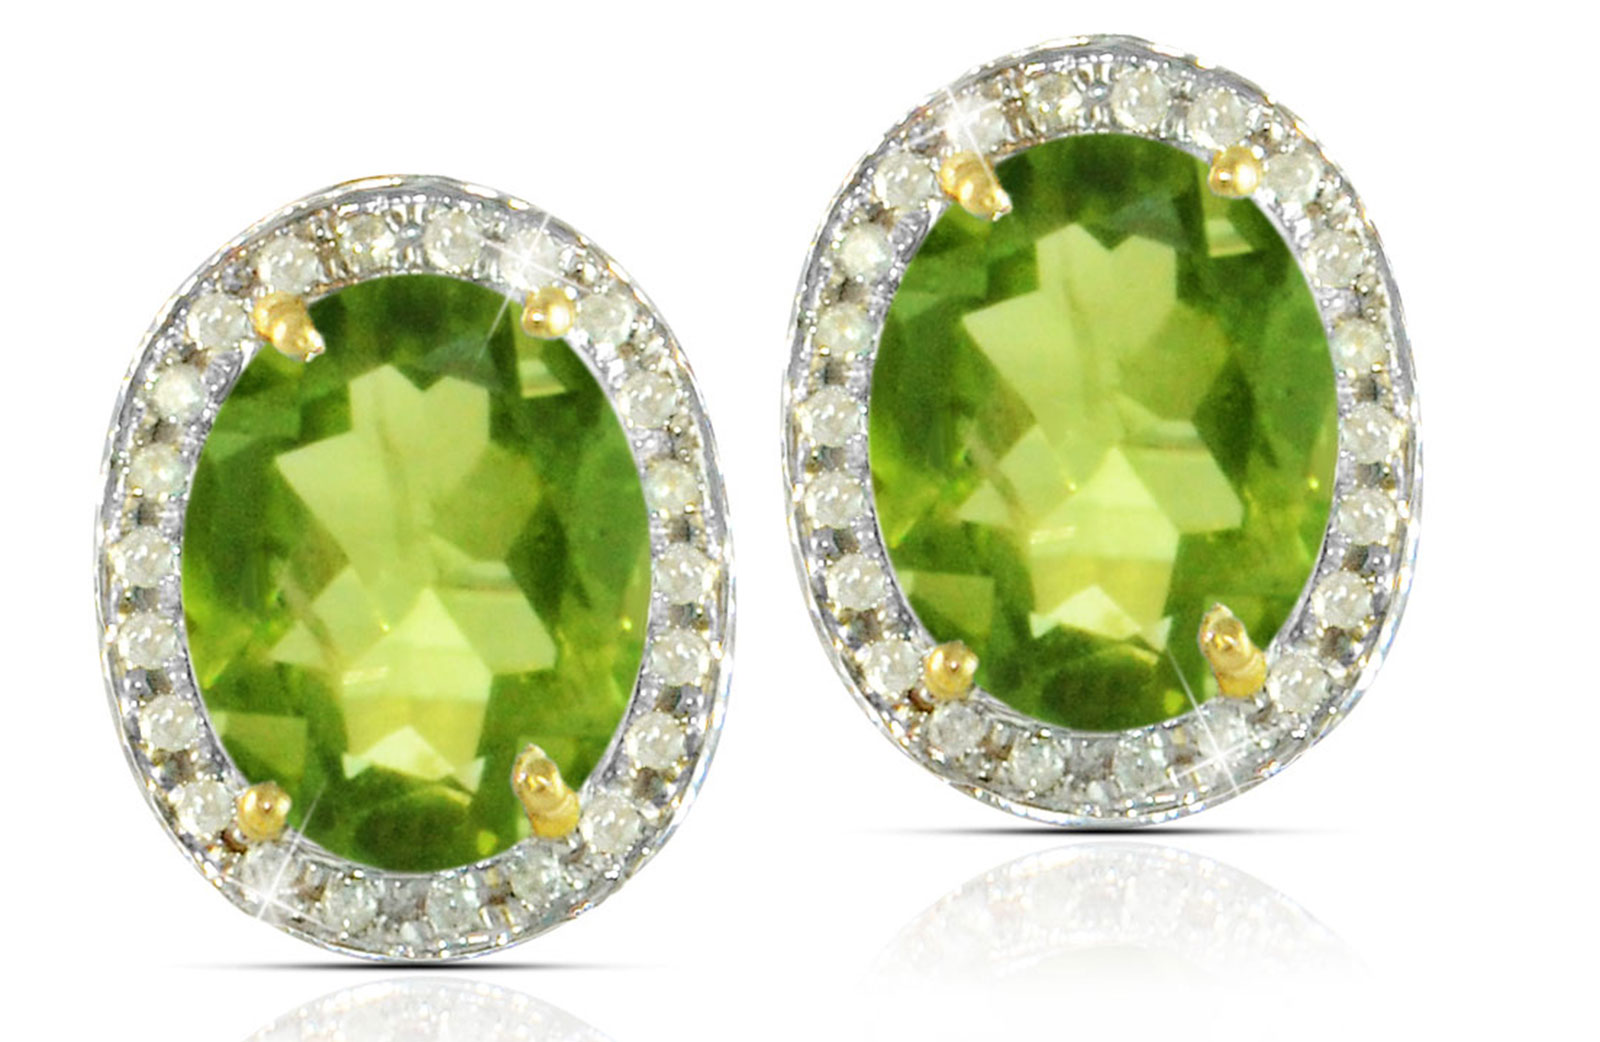 Vera Perla 18k  Gold 10mm Genuine Oval  Cut Peridot 0.24Ct Genuine Diamonds earrings